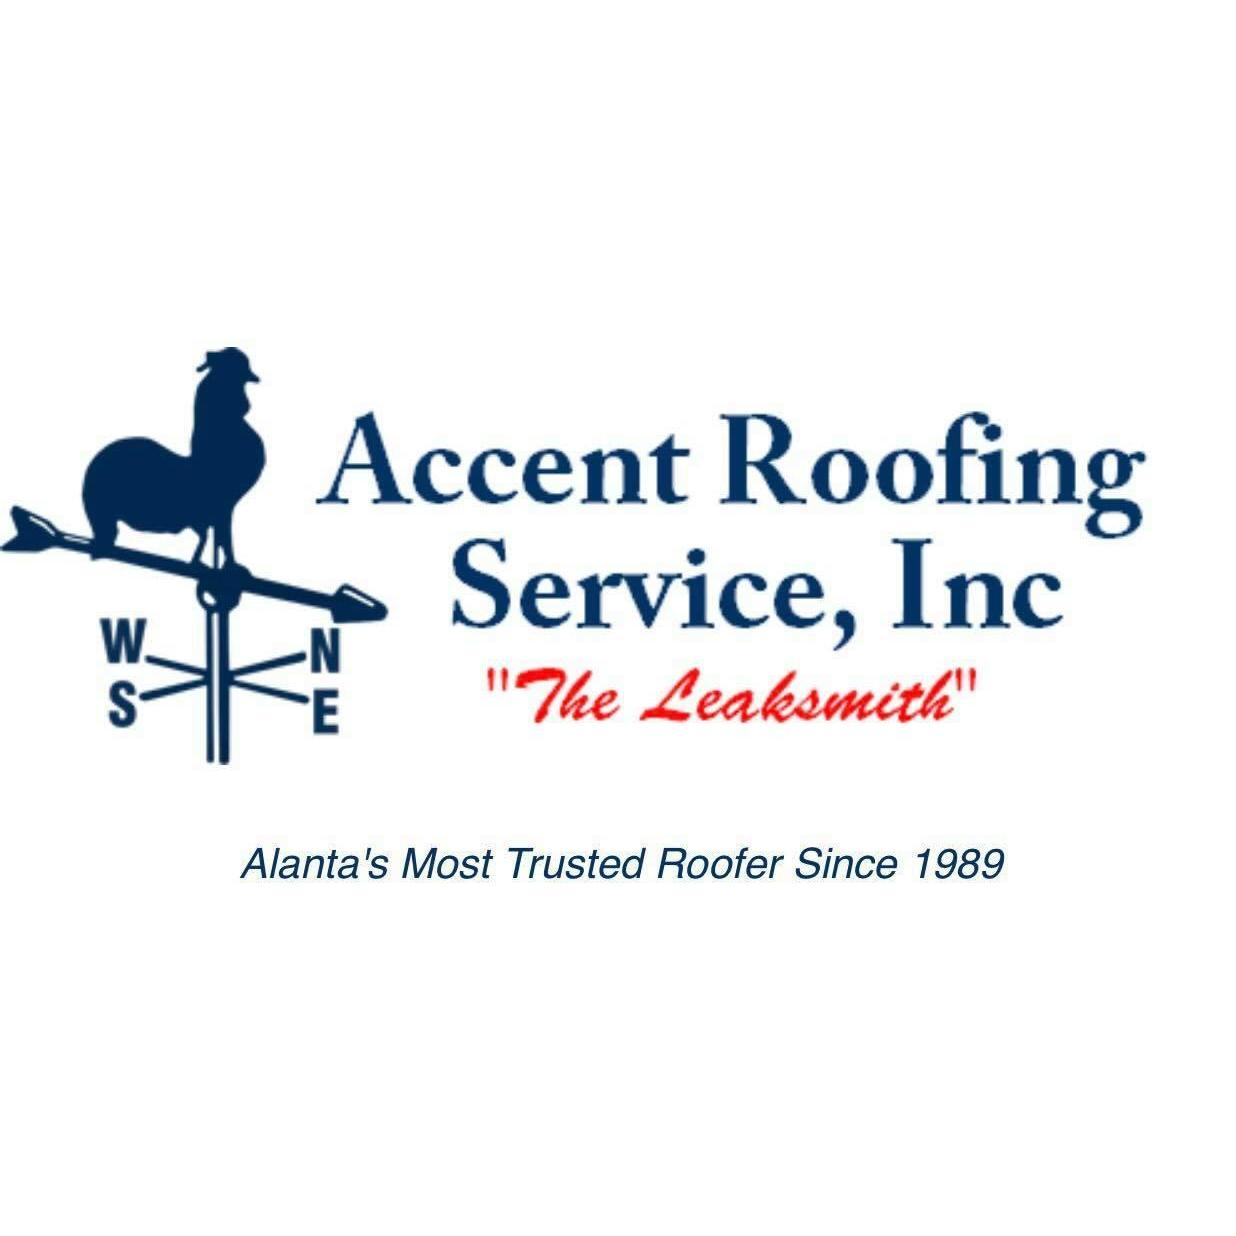 Accent Roofing Service